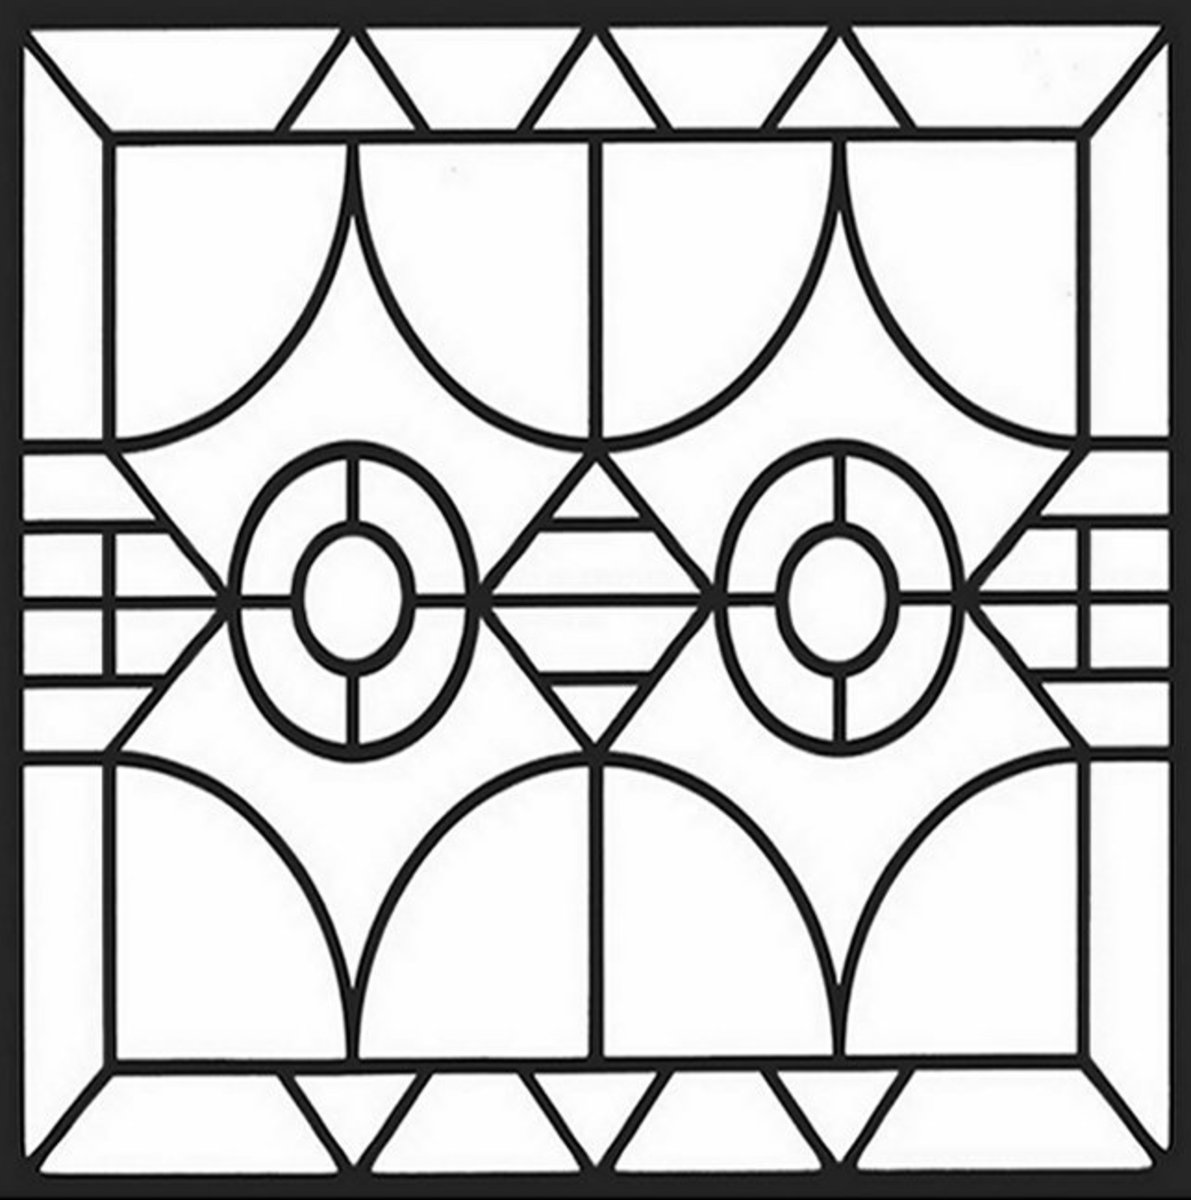 geometric design colouring pictures stained glass colouring pages to print and colour priests at prayer